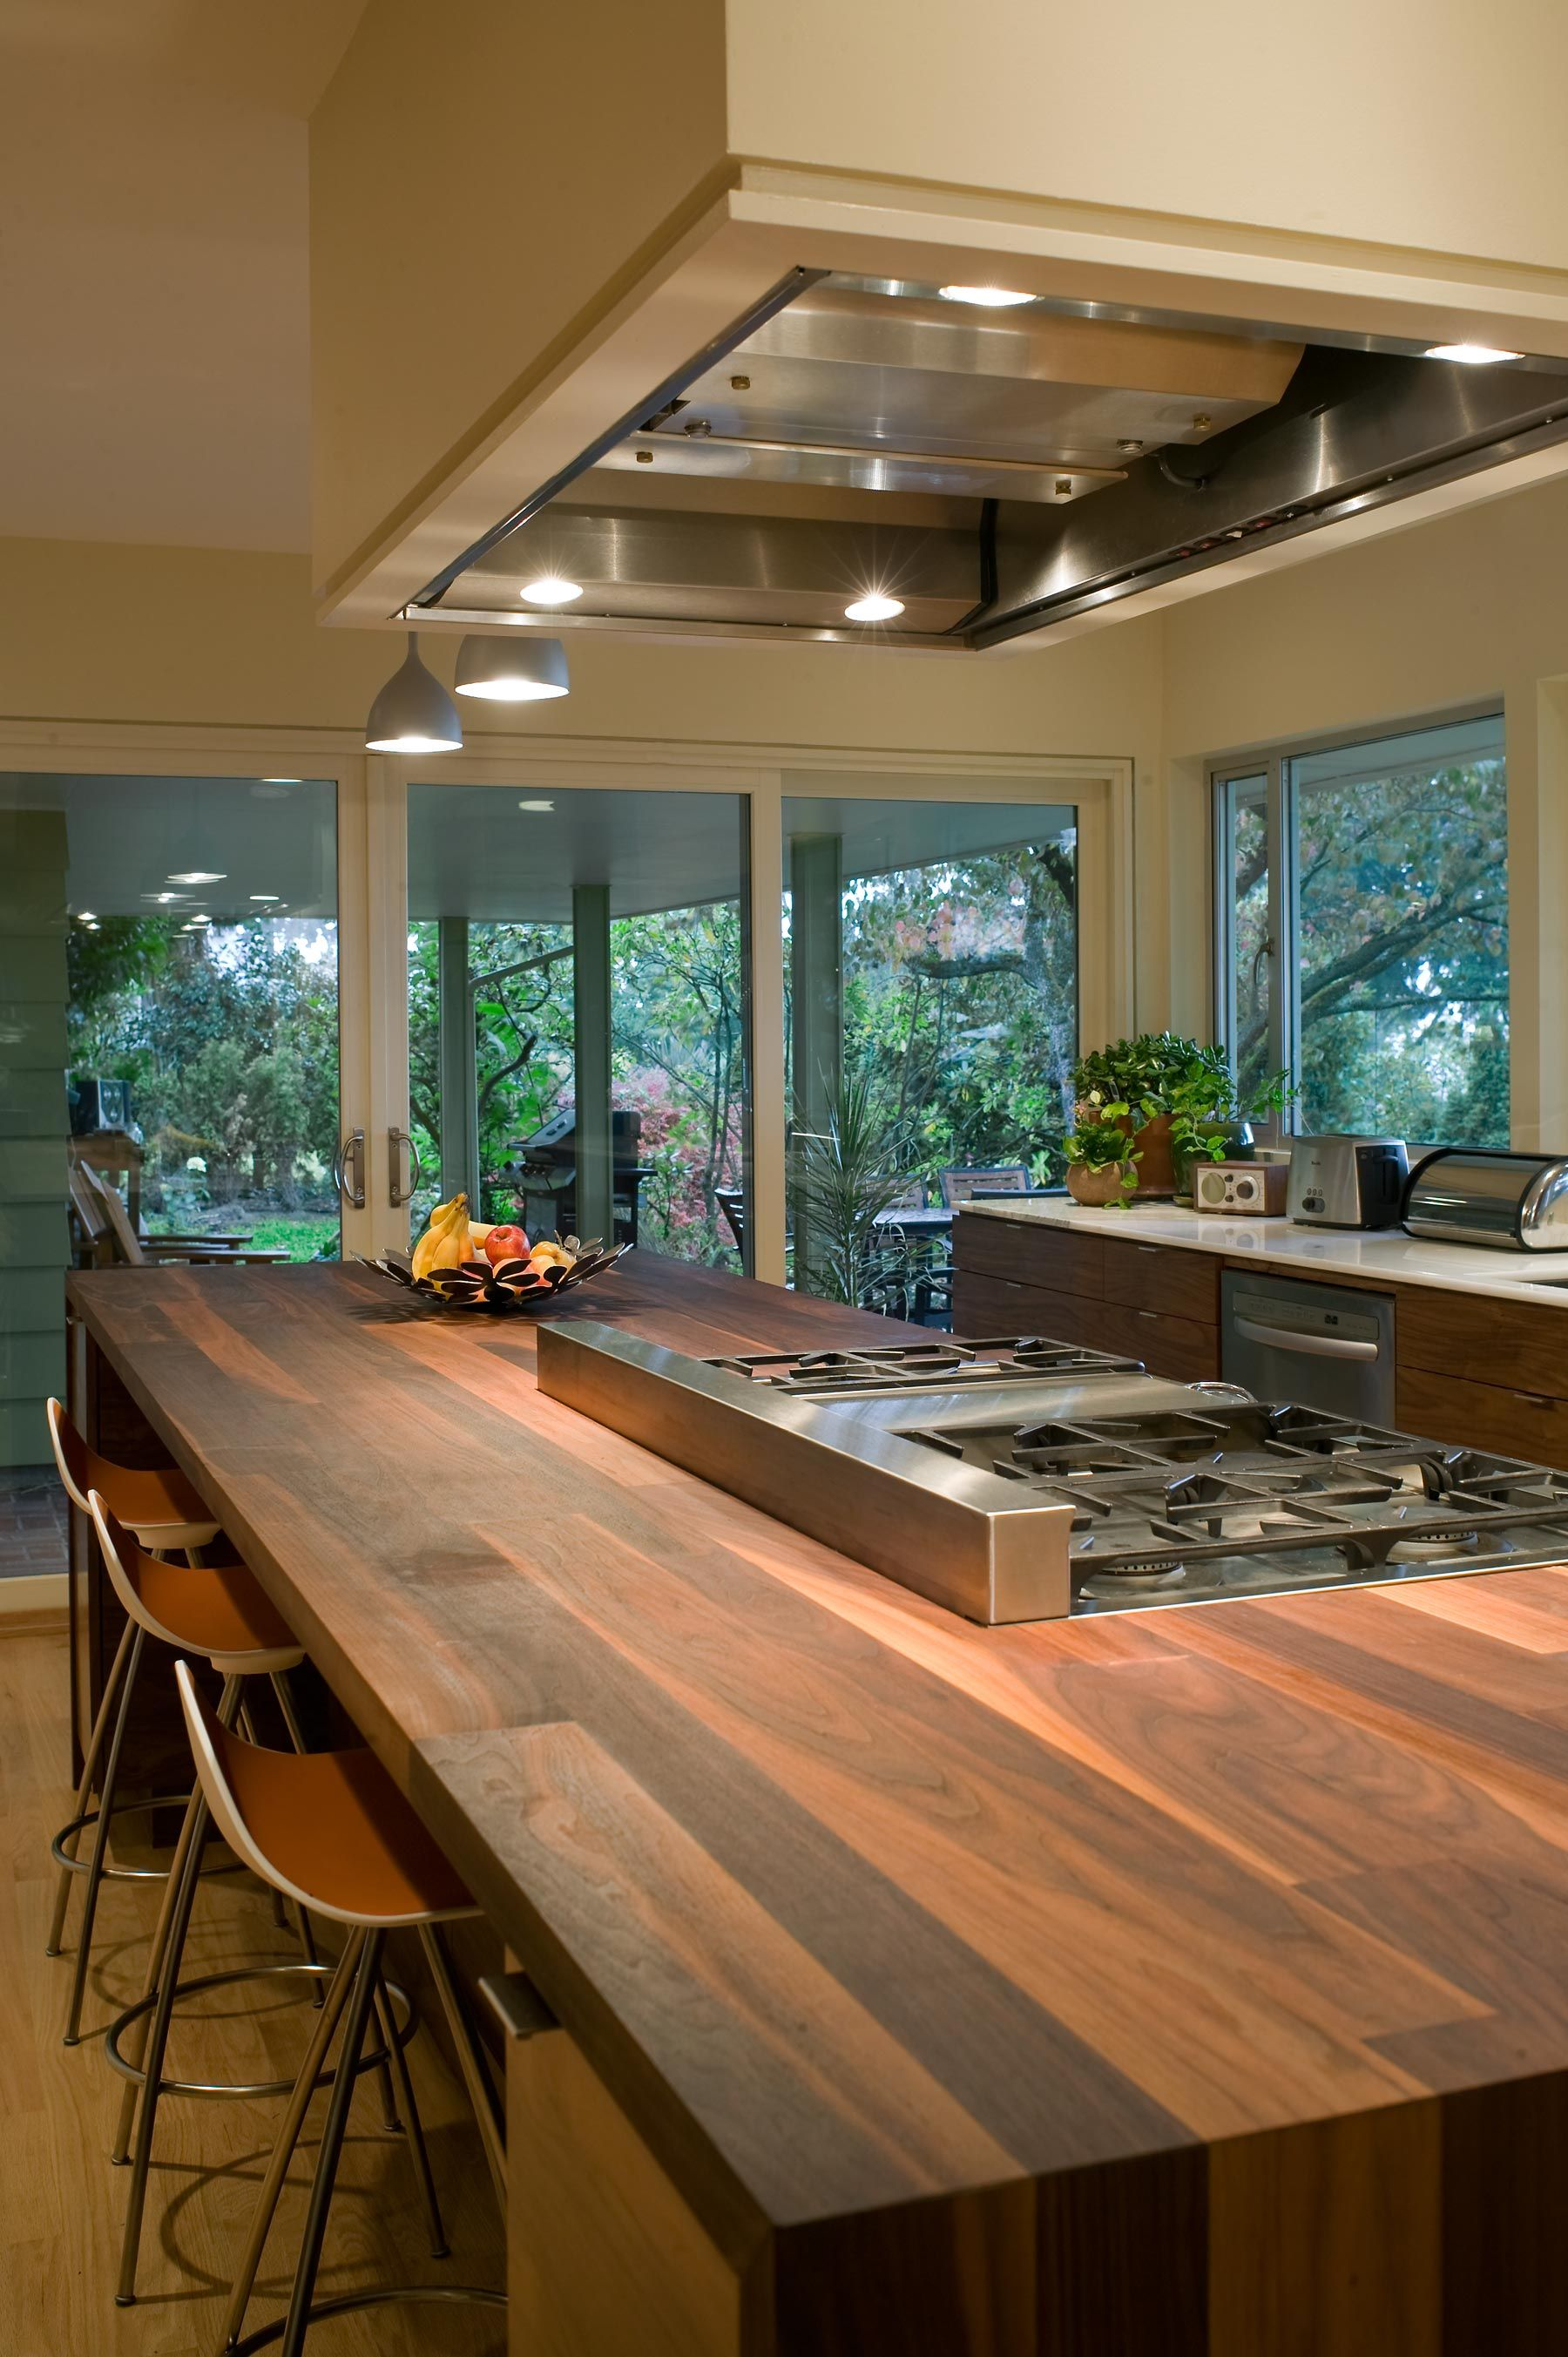 a h h kitchen remodel with a wooden countertop island designed by scott edwards architecture on kitchen remodel appliances id=27182